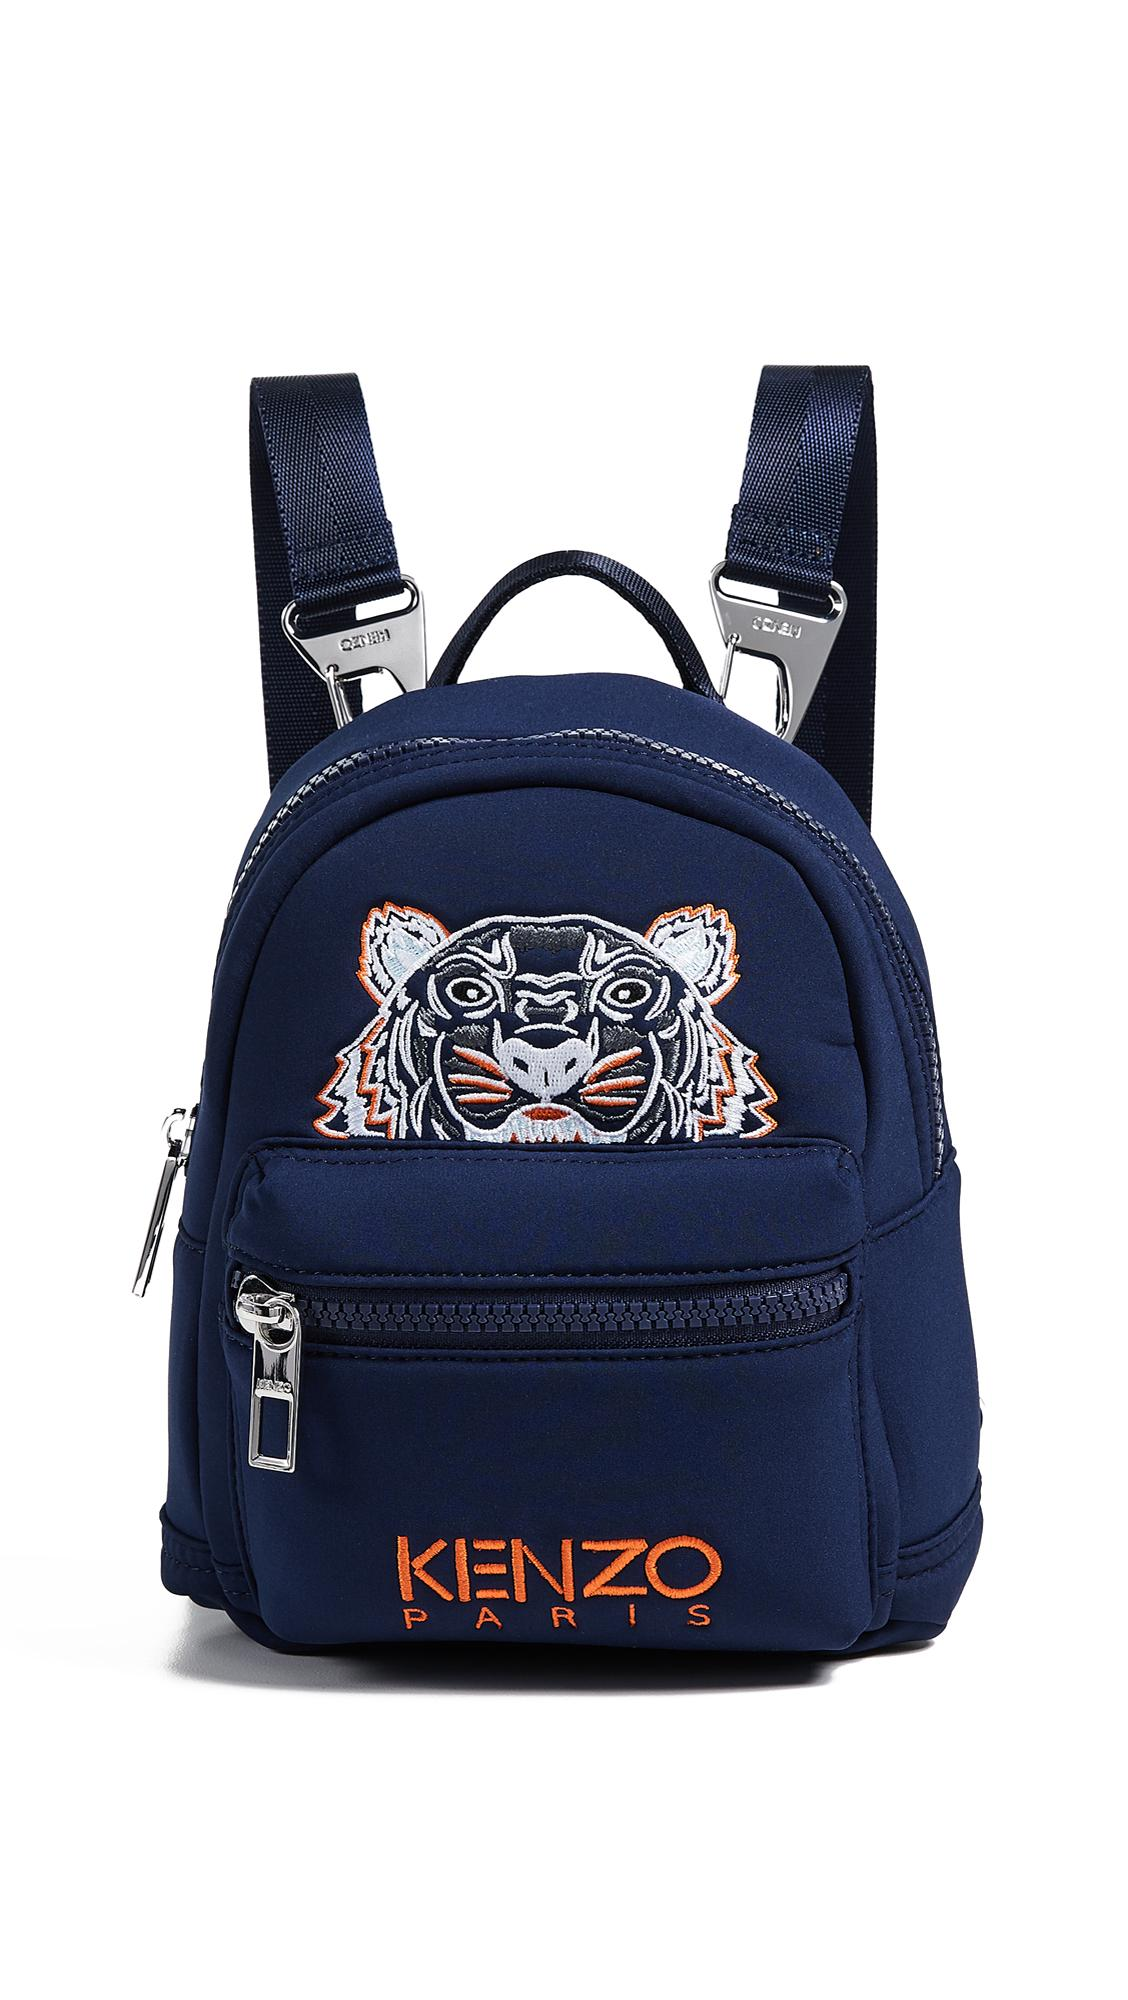 7f8a4146988 Mini Backpack in Navy Blue